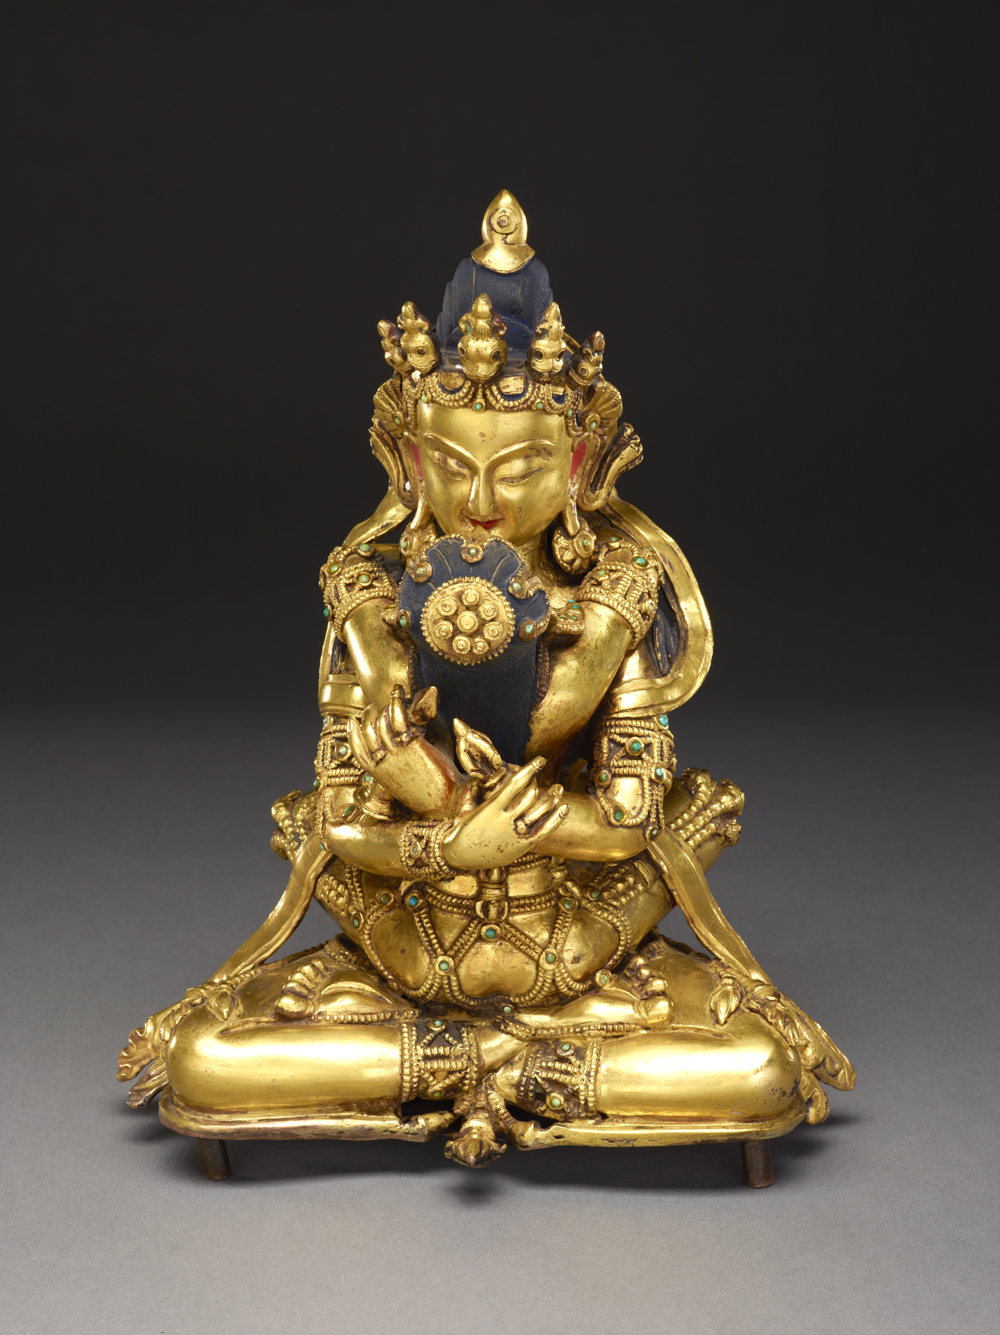 1. Vajradhara (Holder of the Thunderbolt), Tibet, 19th century, Courtesy of The Crow Collection of Asian Art.